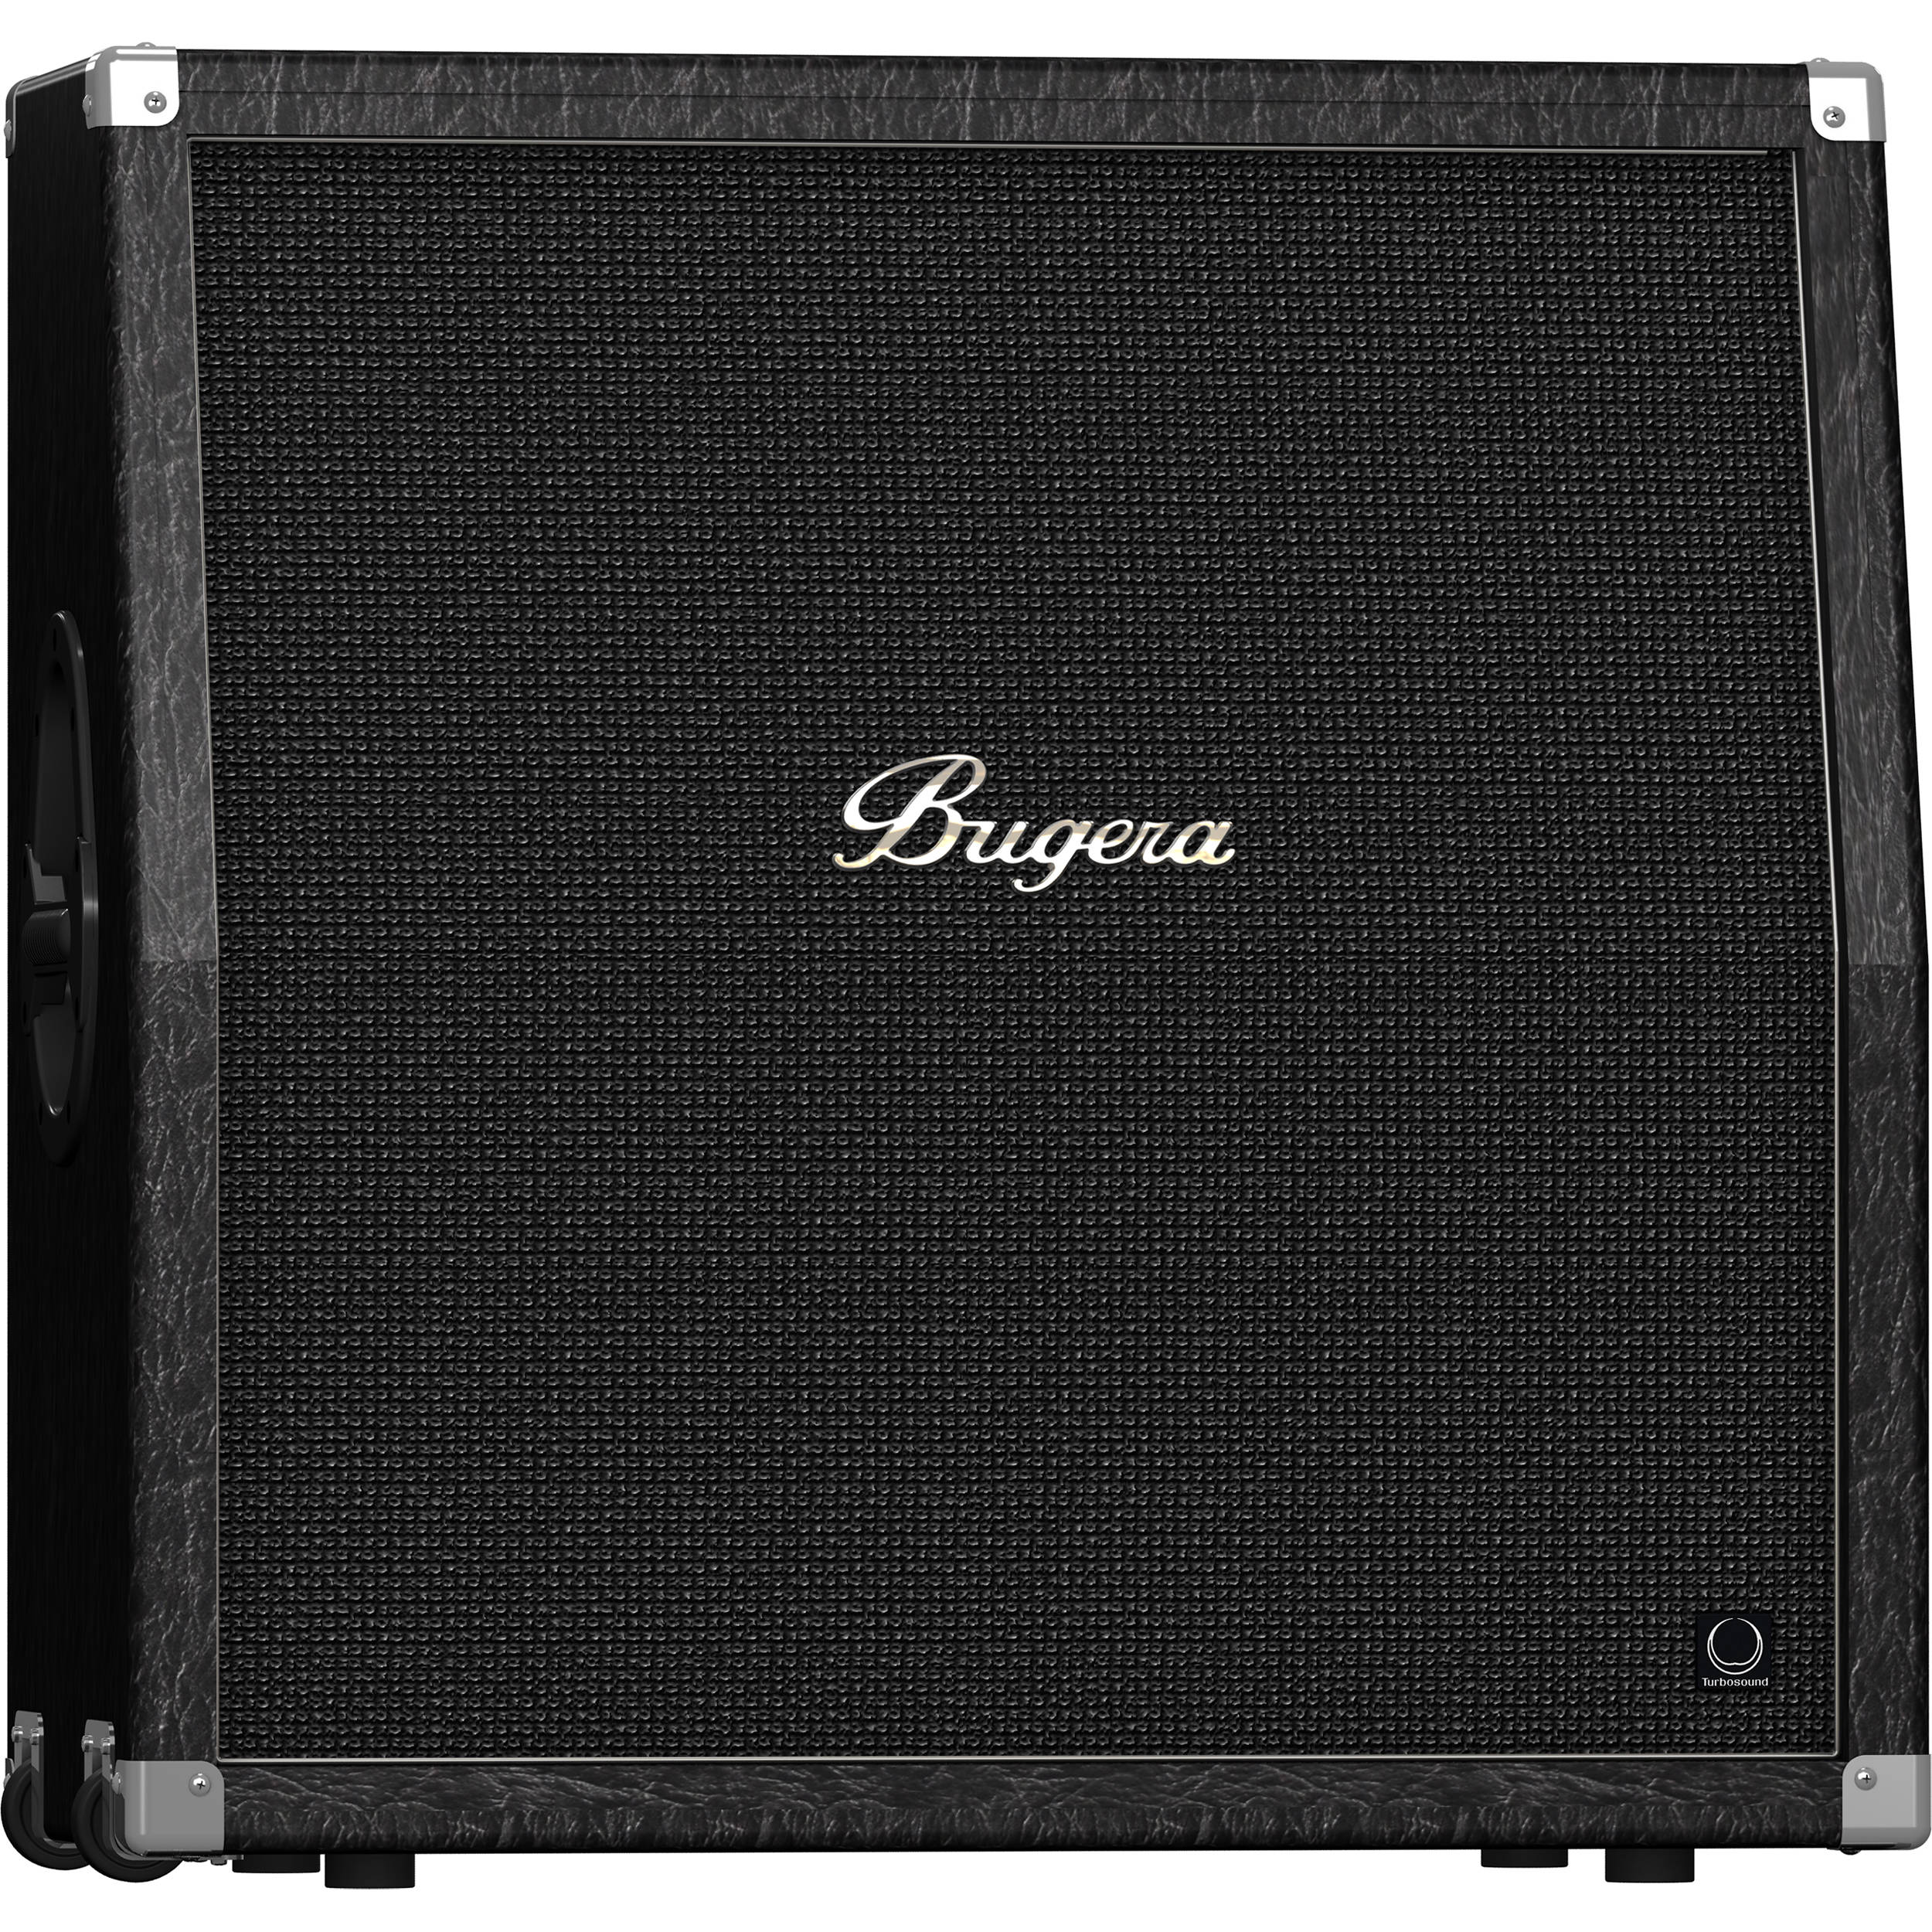 Bugera 412TS 200W Half-Stack Guitar Cabinet with Turbosound Speakers (4 x  12